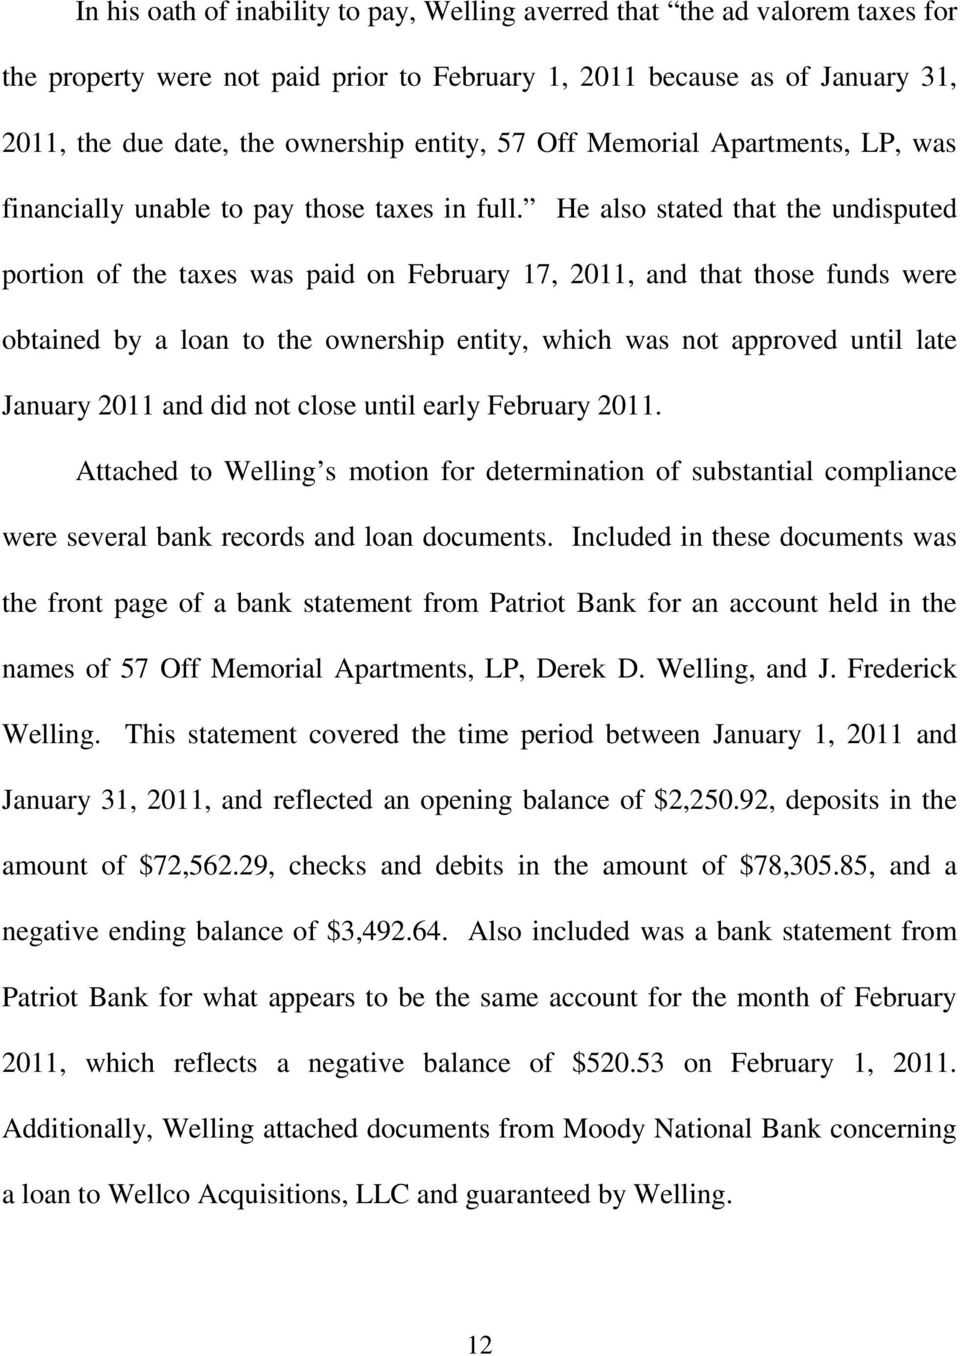 He also stated that the undisputed portion of the taxes was paid on February 17, 2011, and that those funds were obtained by a loan to the ownership entity, which was not approved until late January